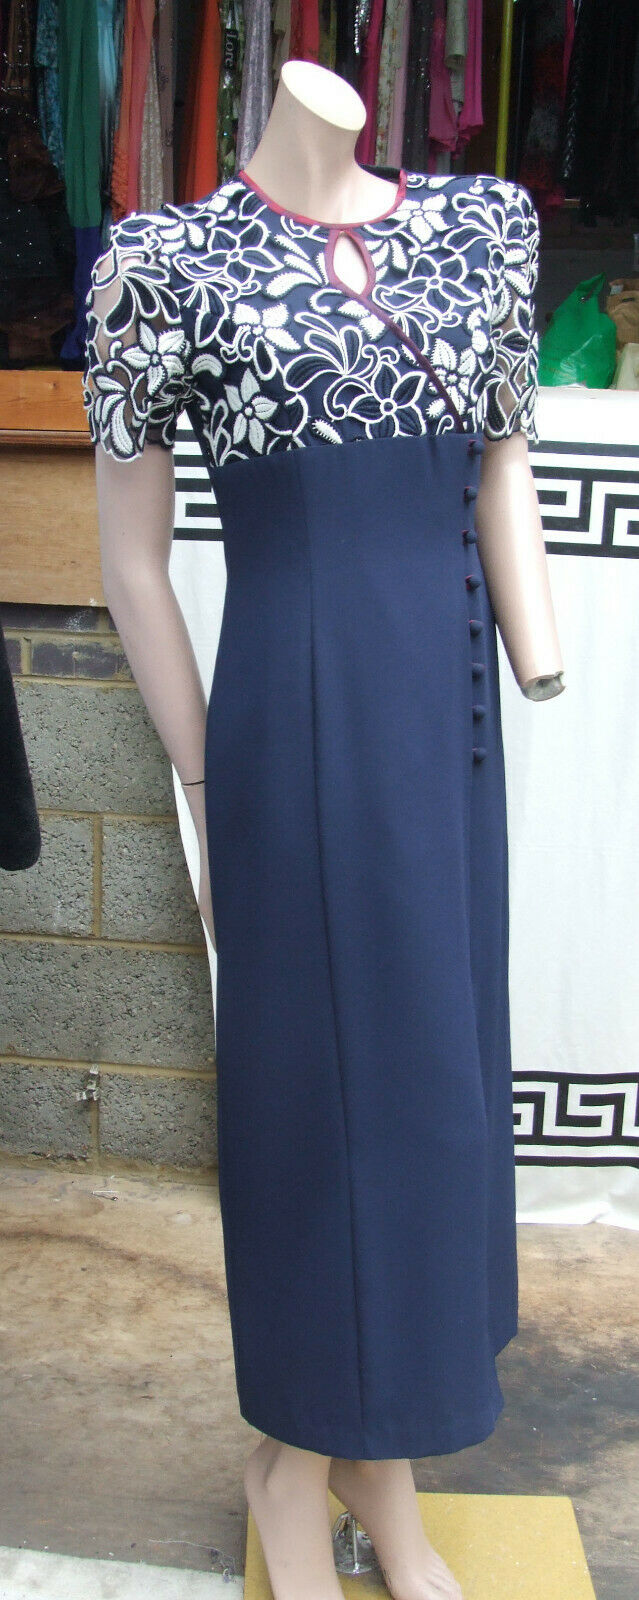 Official Magnificent Long Navy bluee & White Lase Cut Evening Dress